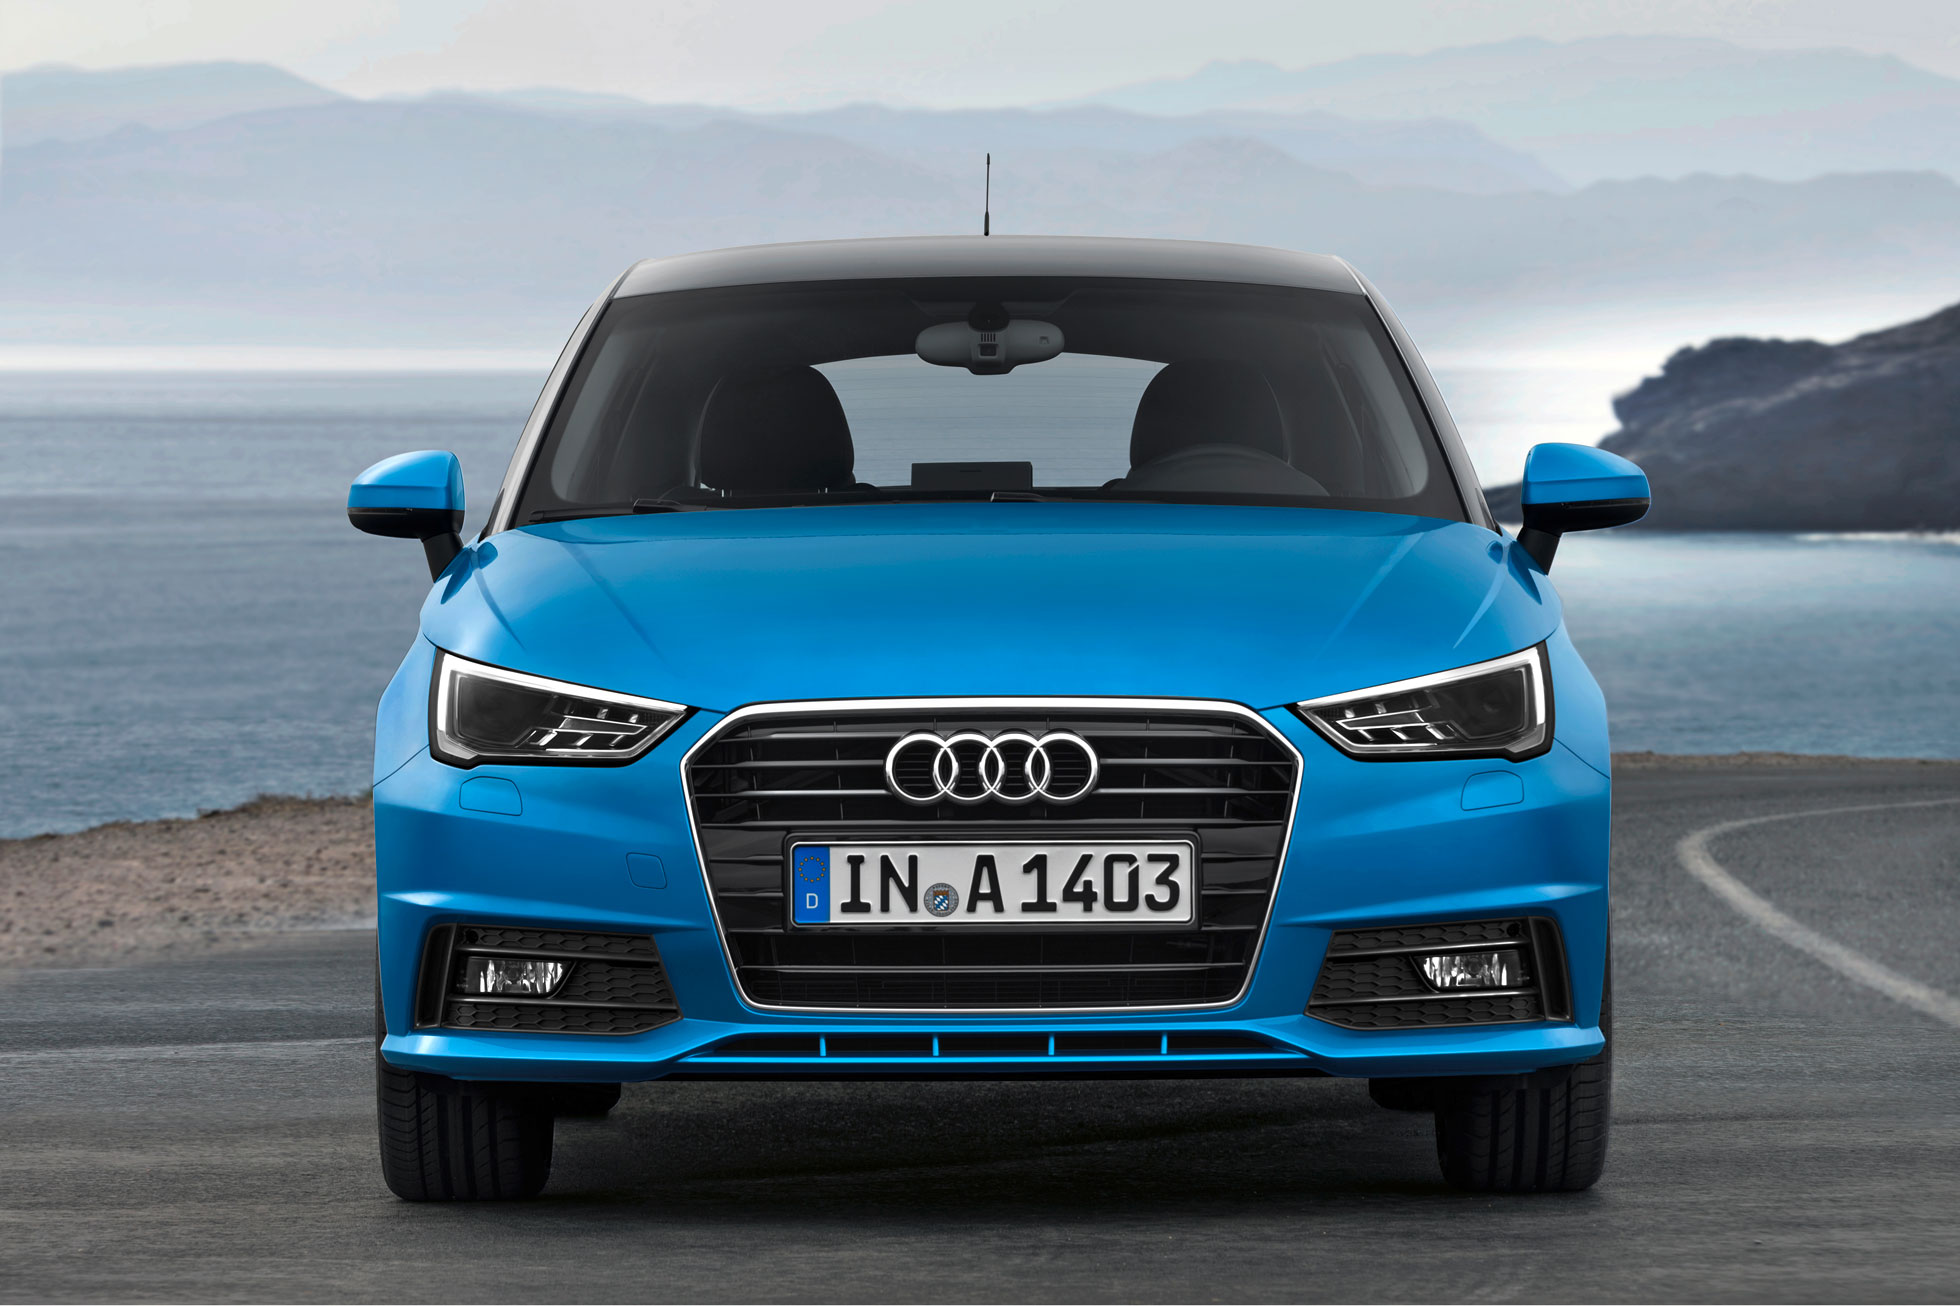 SEAT to build new Audi A1 in Spain